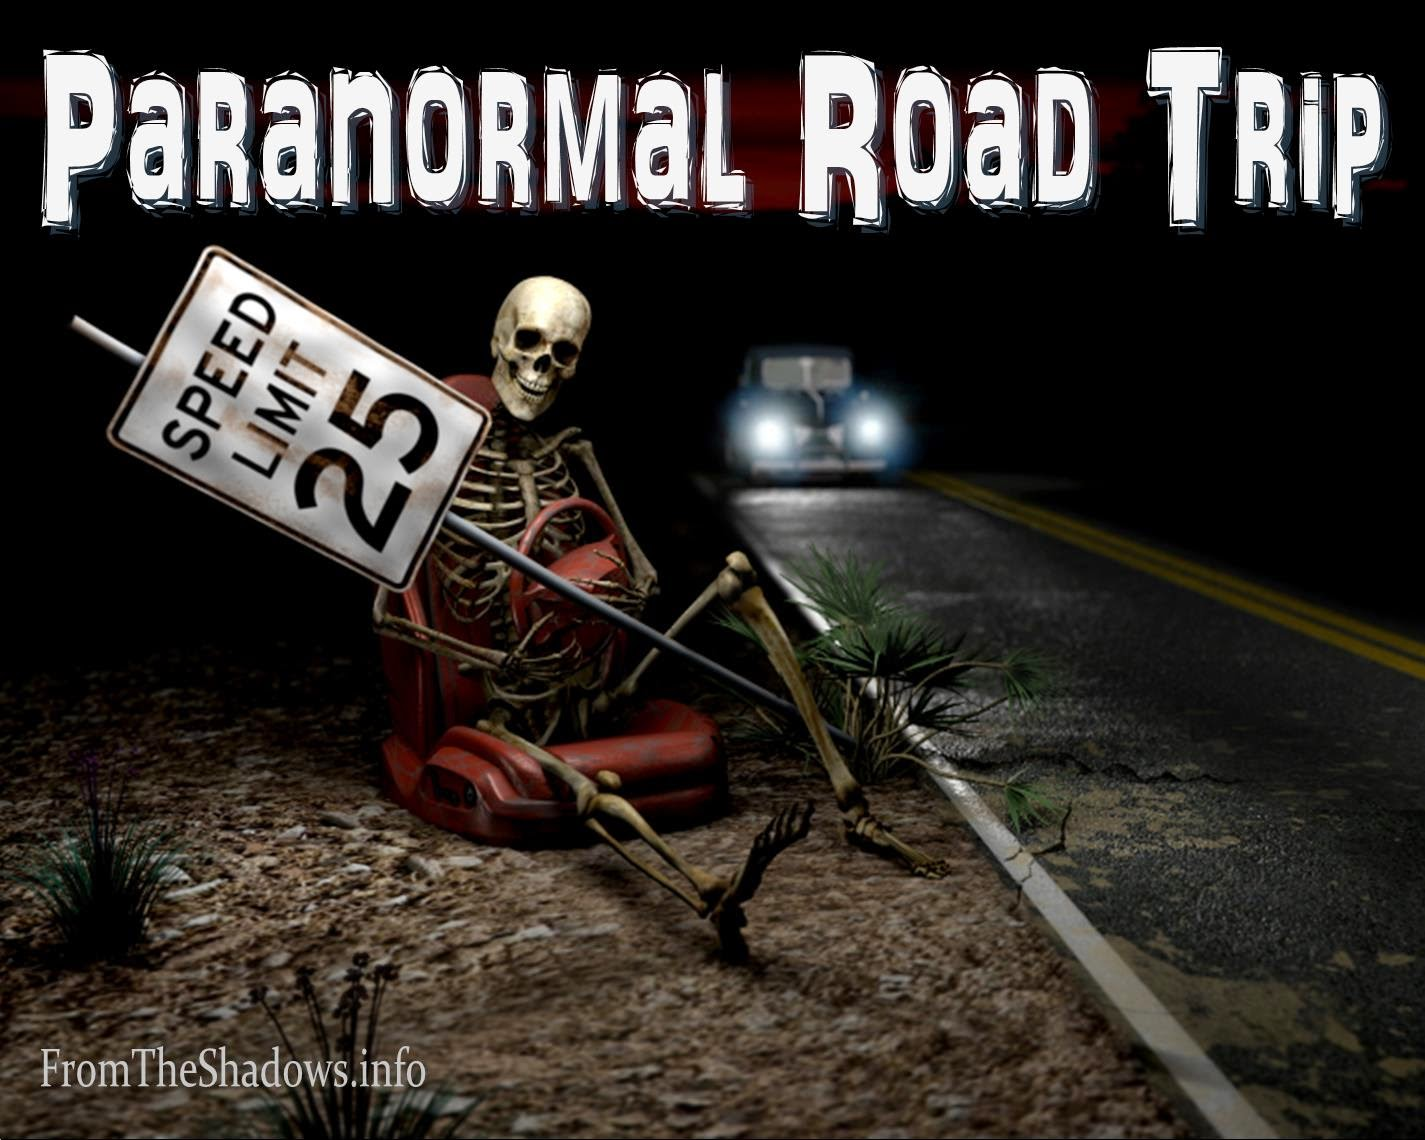 Paranormal Road Trip: Destination Kingsholme Faerie with C.T. Adams